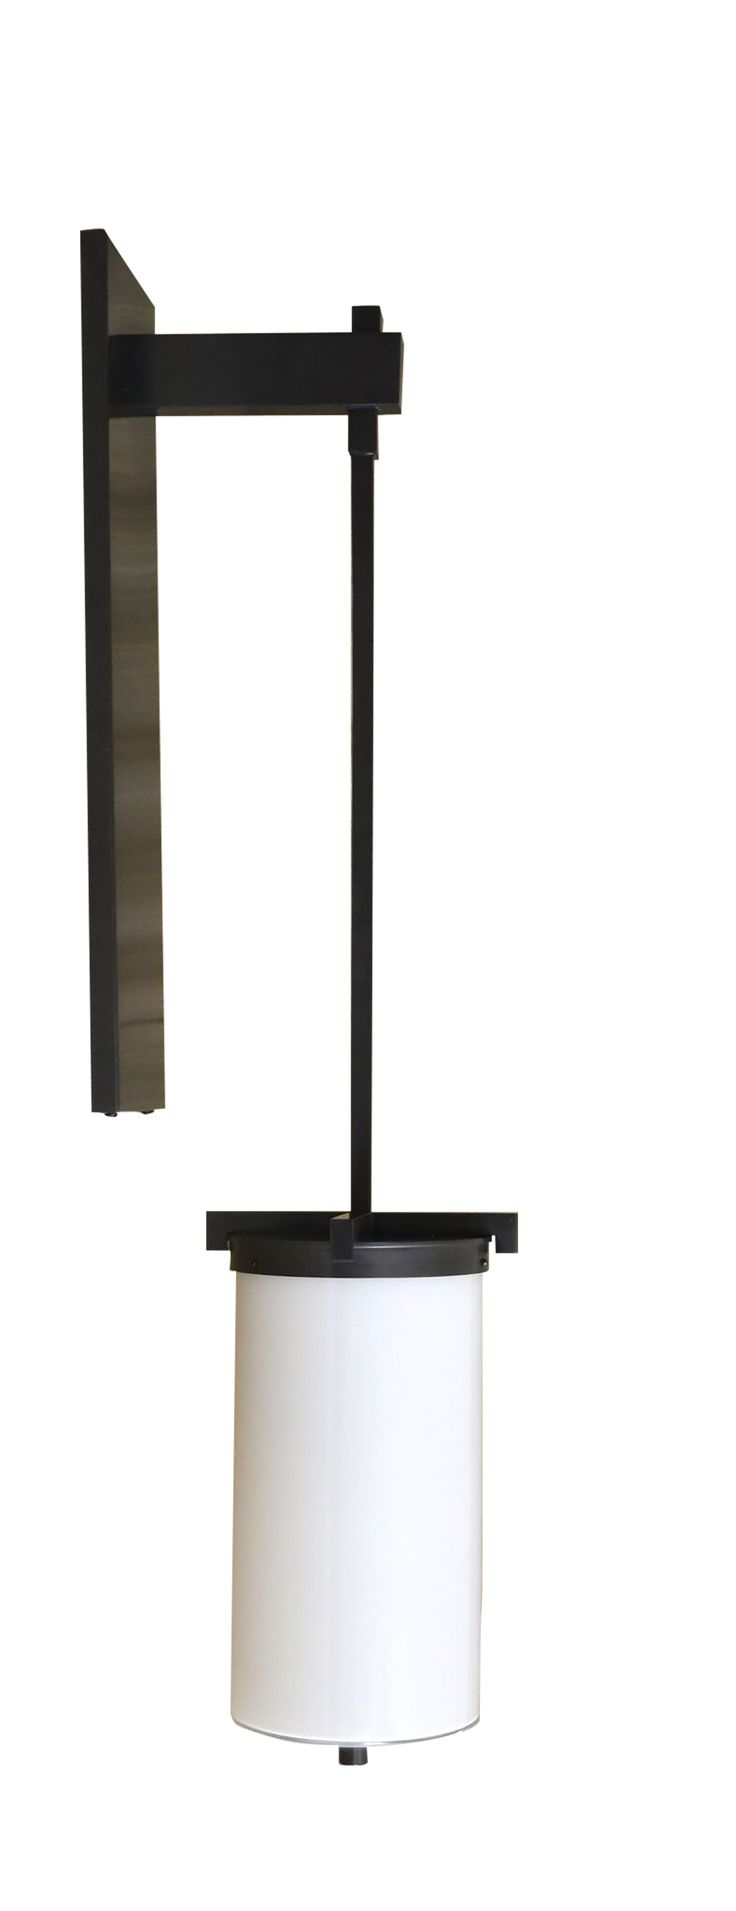 Buy tL* Brass Lantern Sconce by tL* Custom Lighting - Quick Ship designer Lighting from Dering Hall's collection of Contemporary Industrial Mid-Century / Modern Lanterns.